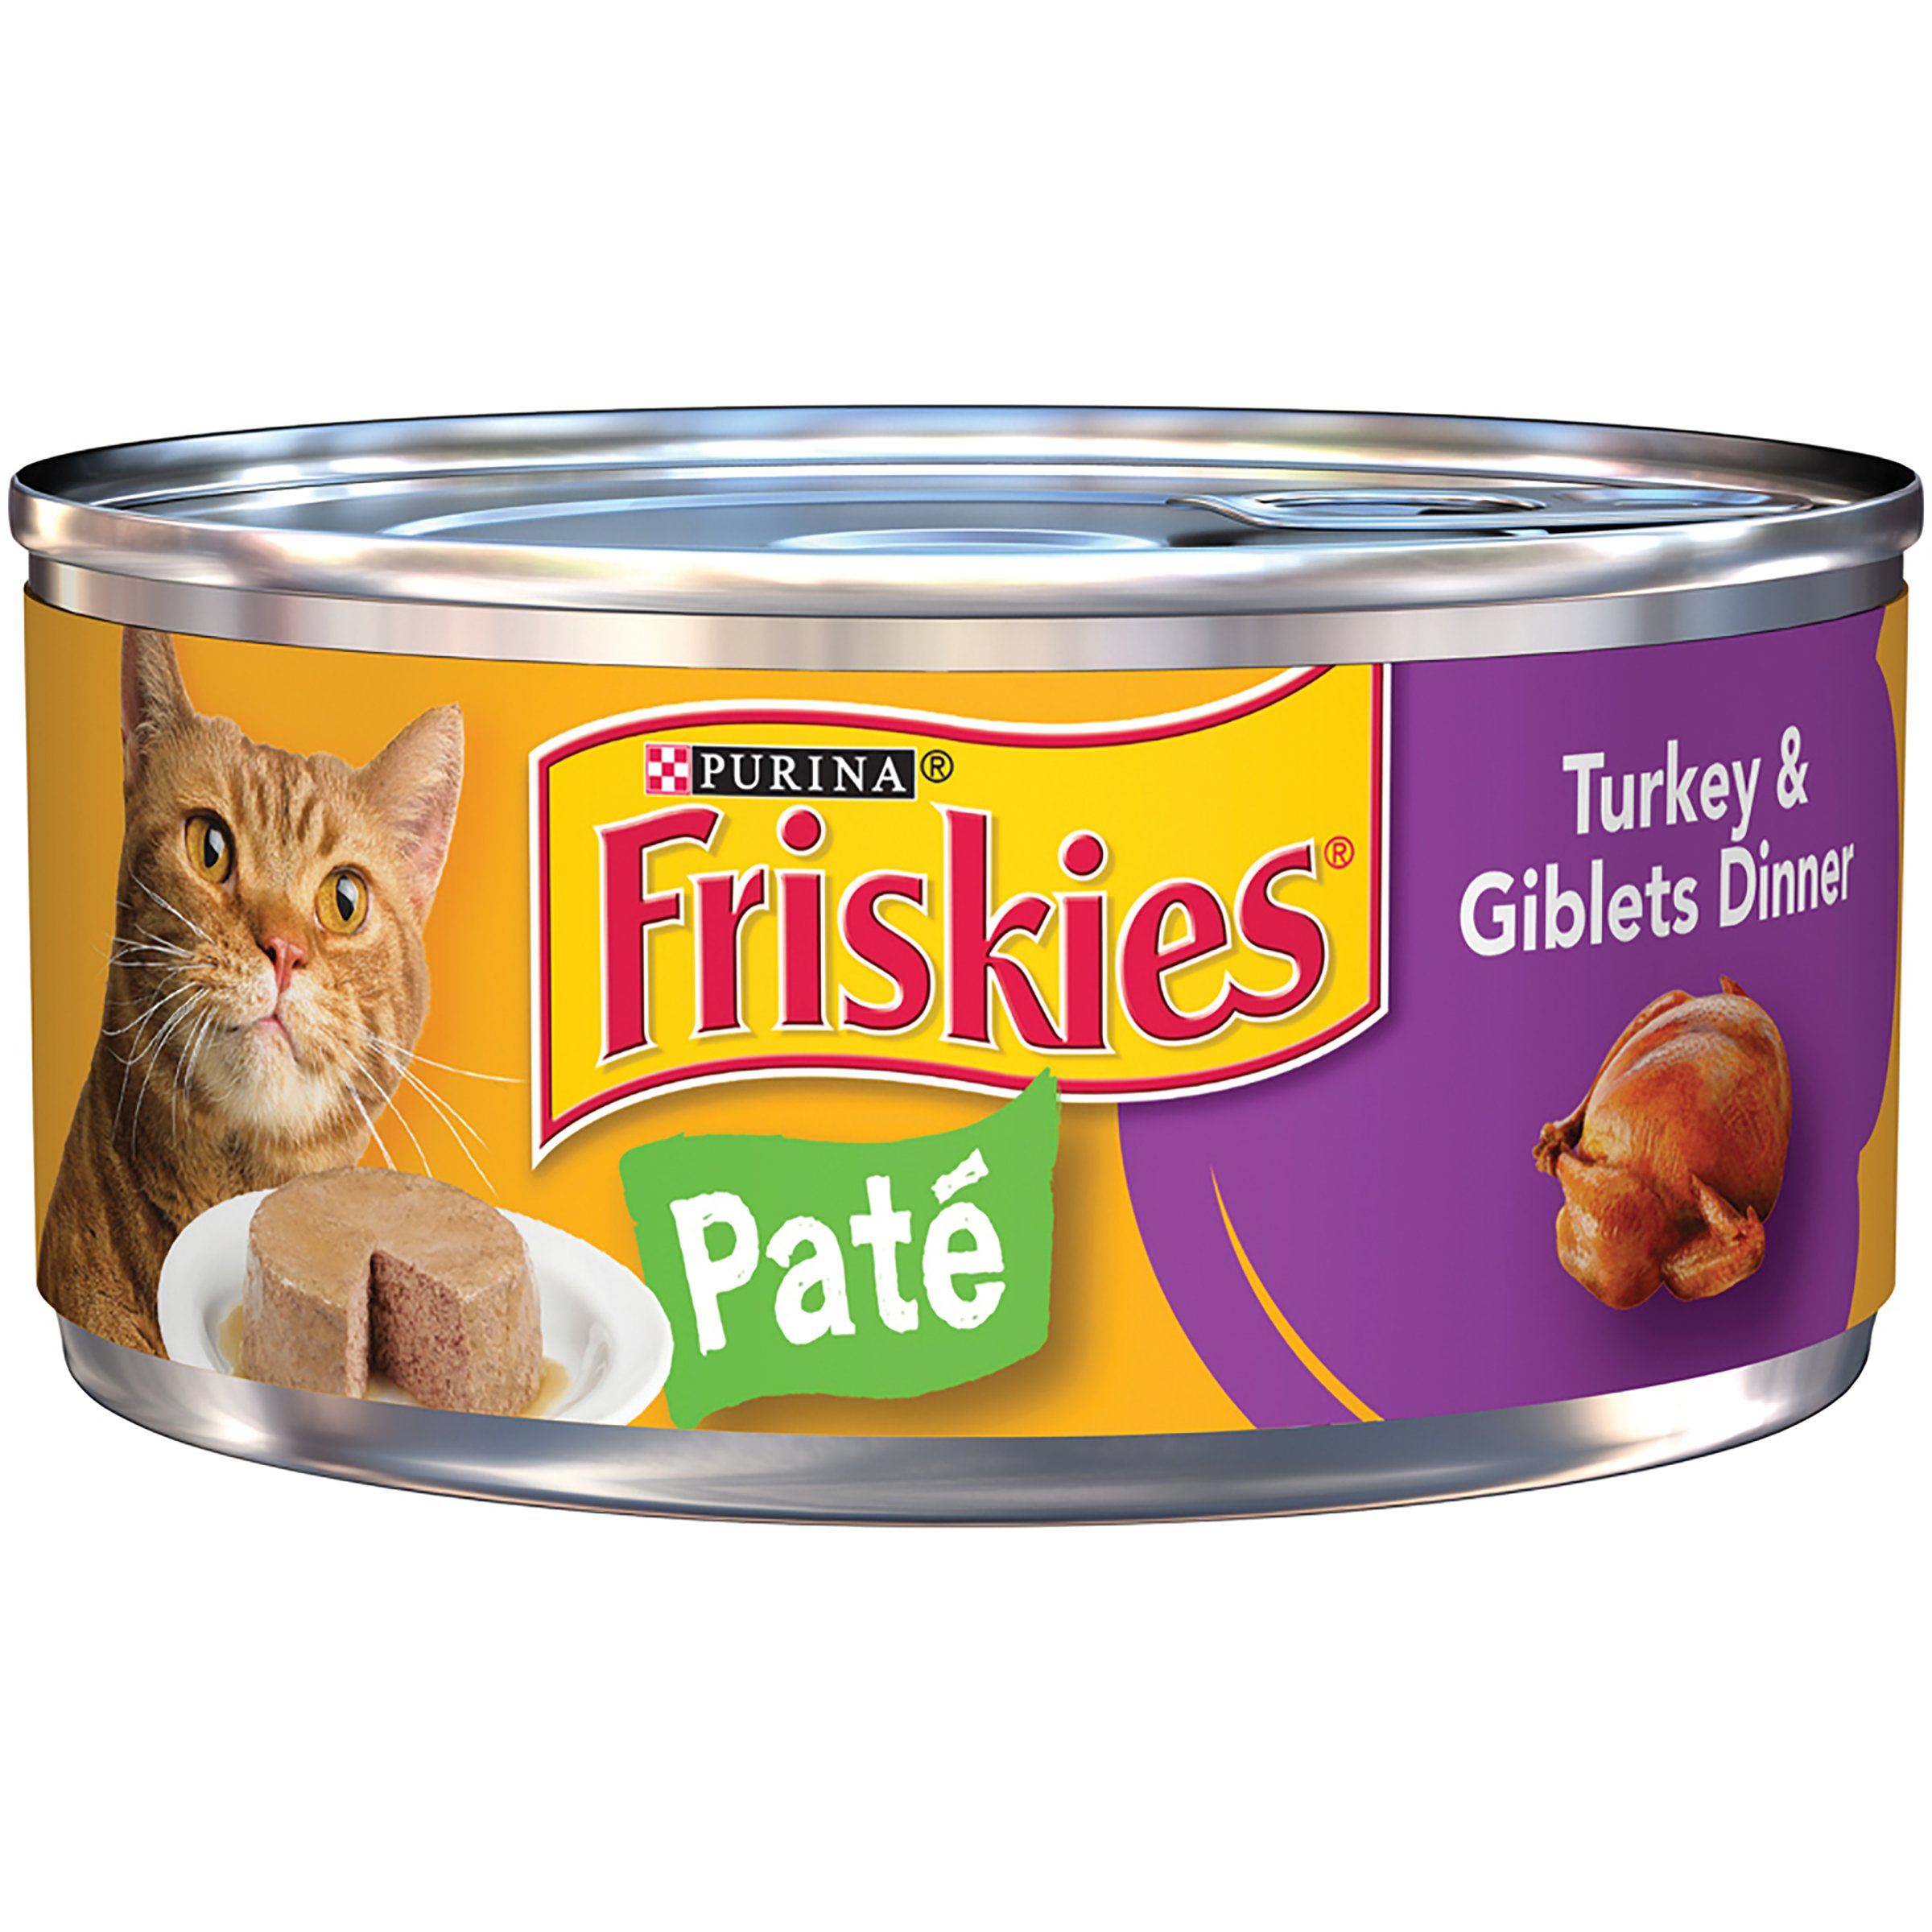 Purina Friskies Classic Pate Wet Cat Food 5.5 oz Standard Packaging